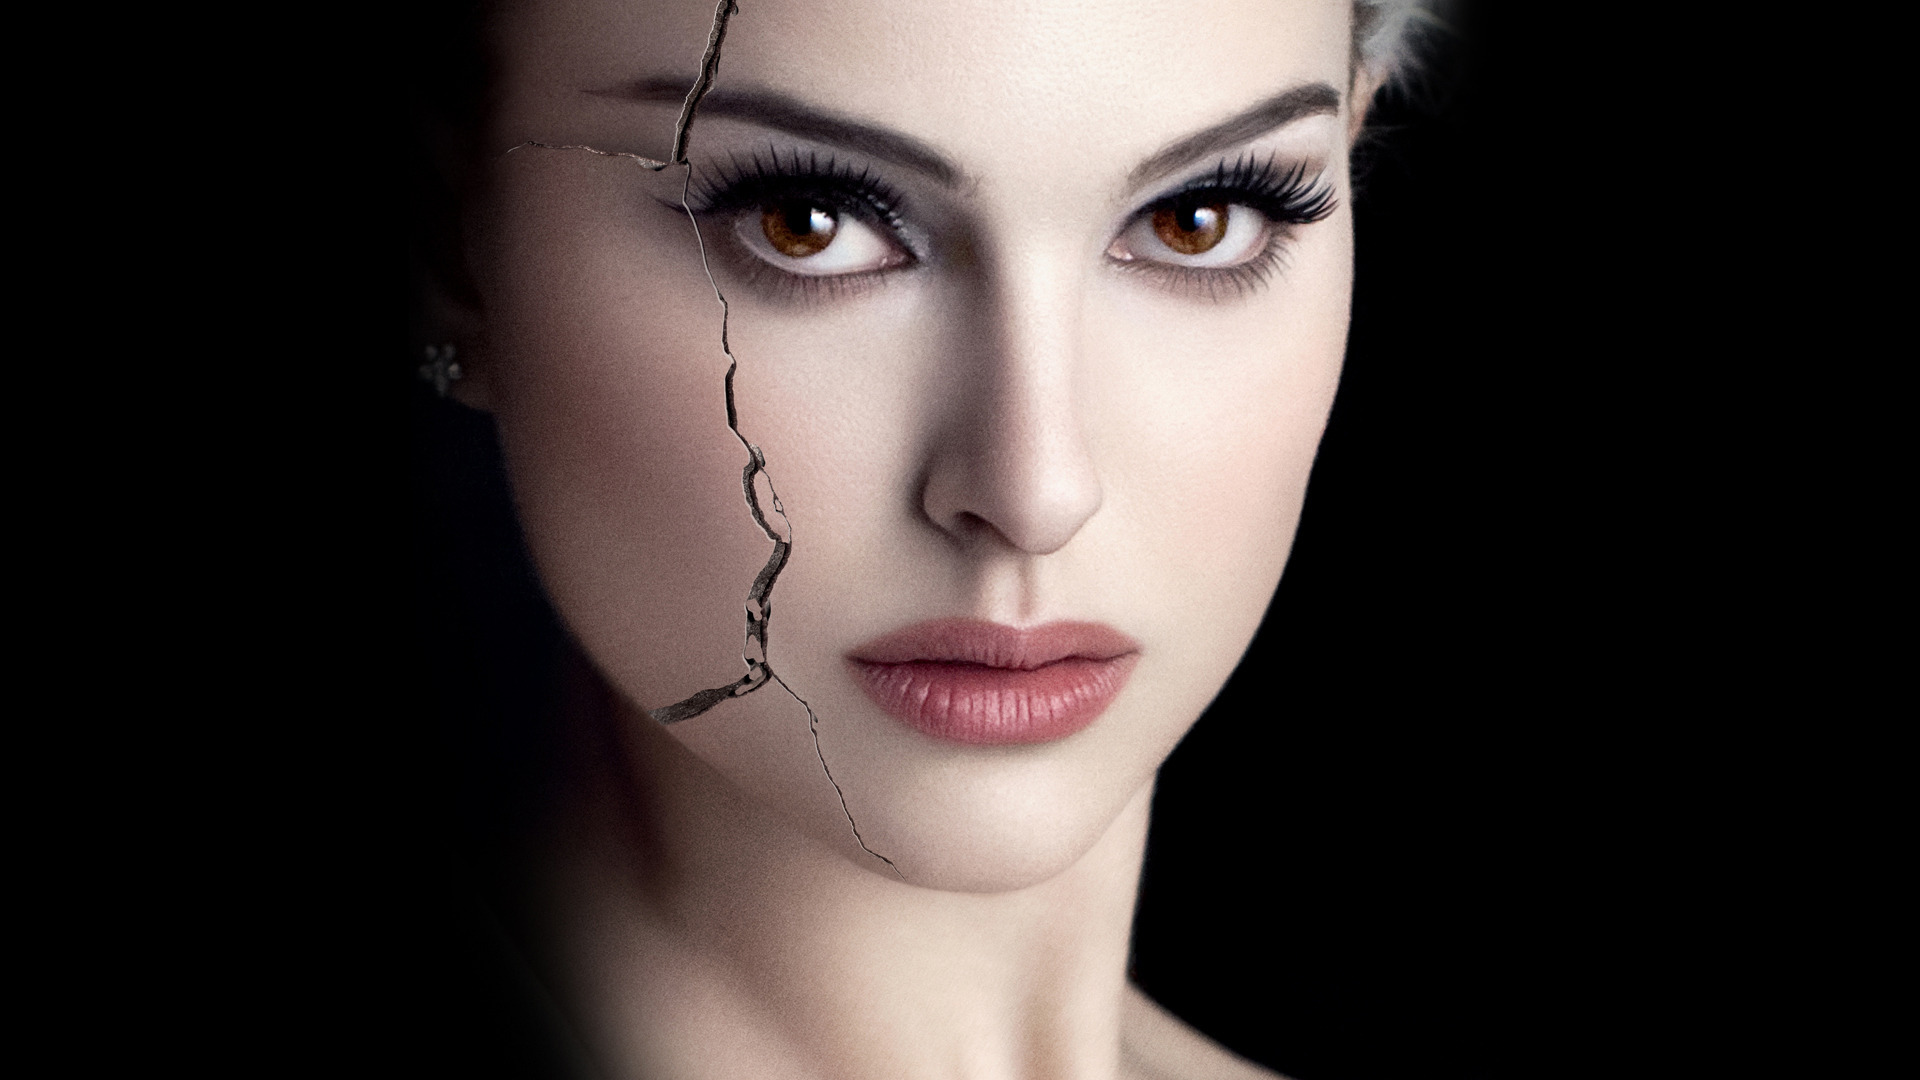 black swan psychology essay The movie black swan depicts the disturbing descent of ballerina nina sayers, played by natalie portman, into psychosis most analyses of the film focus on nina's obsessive compulsive and anorexia symptoms and her preoccupation with physical and professional perfection.